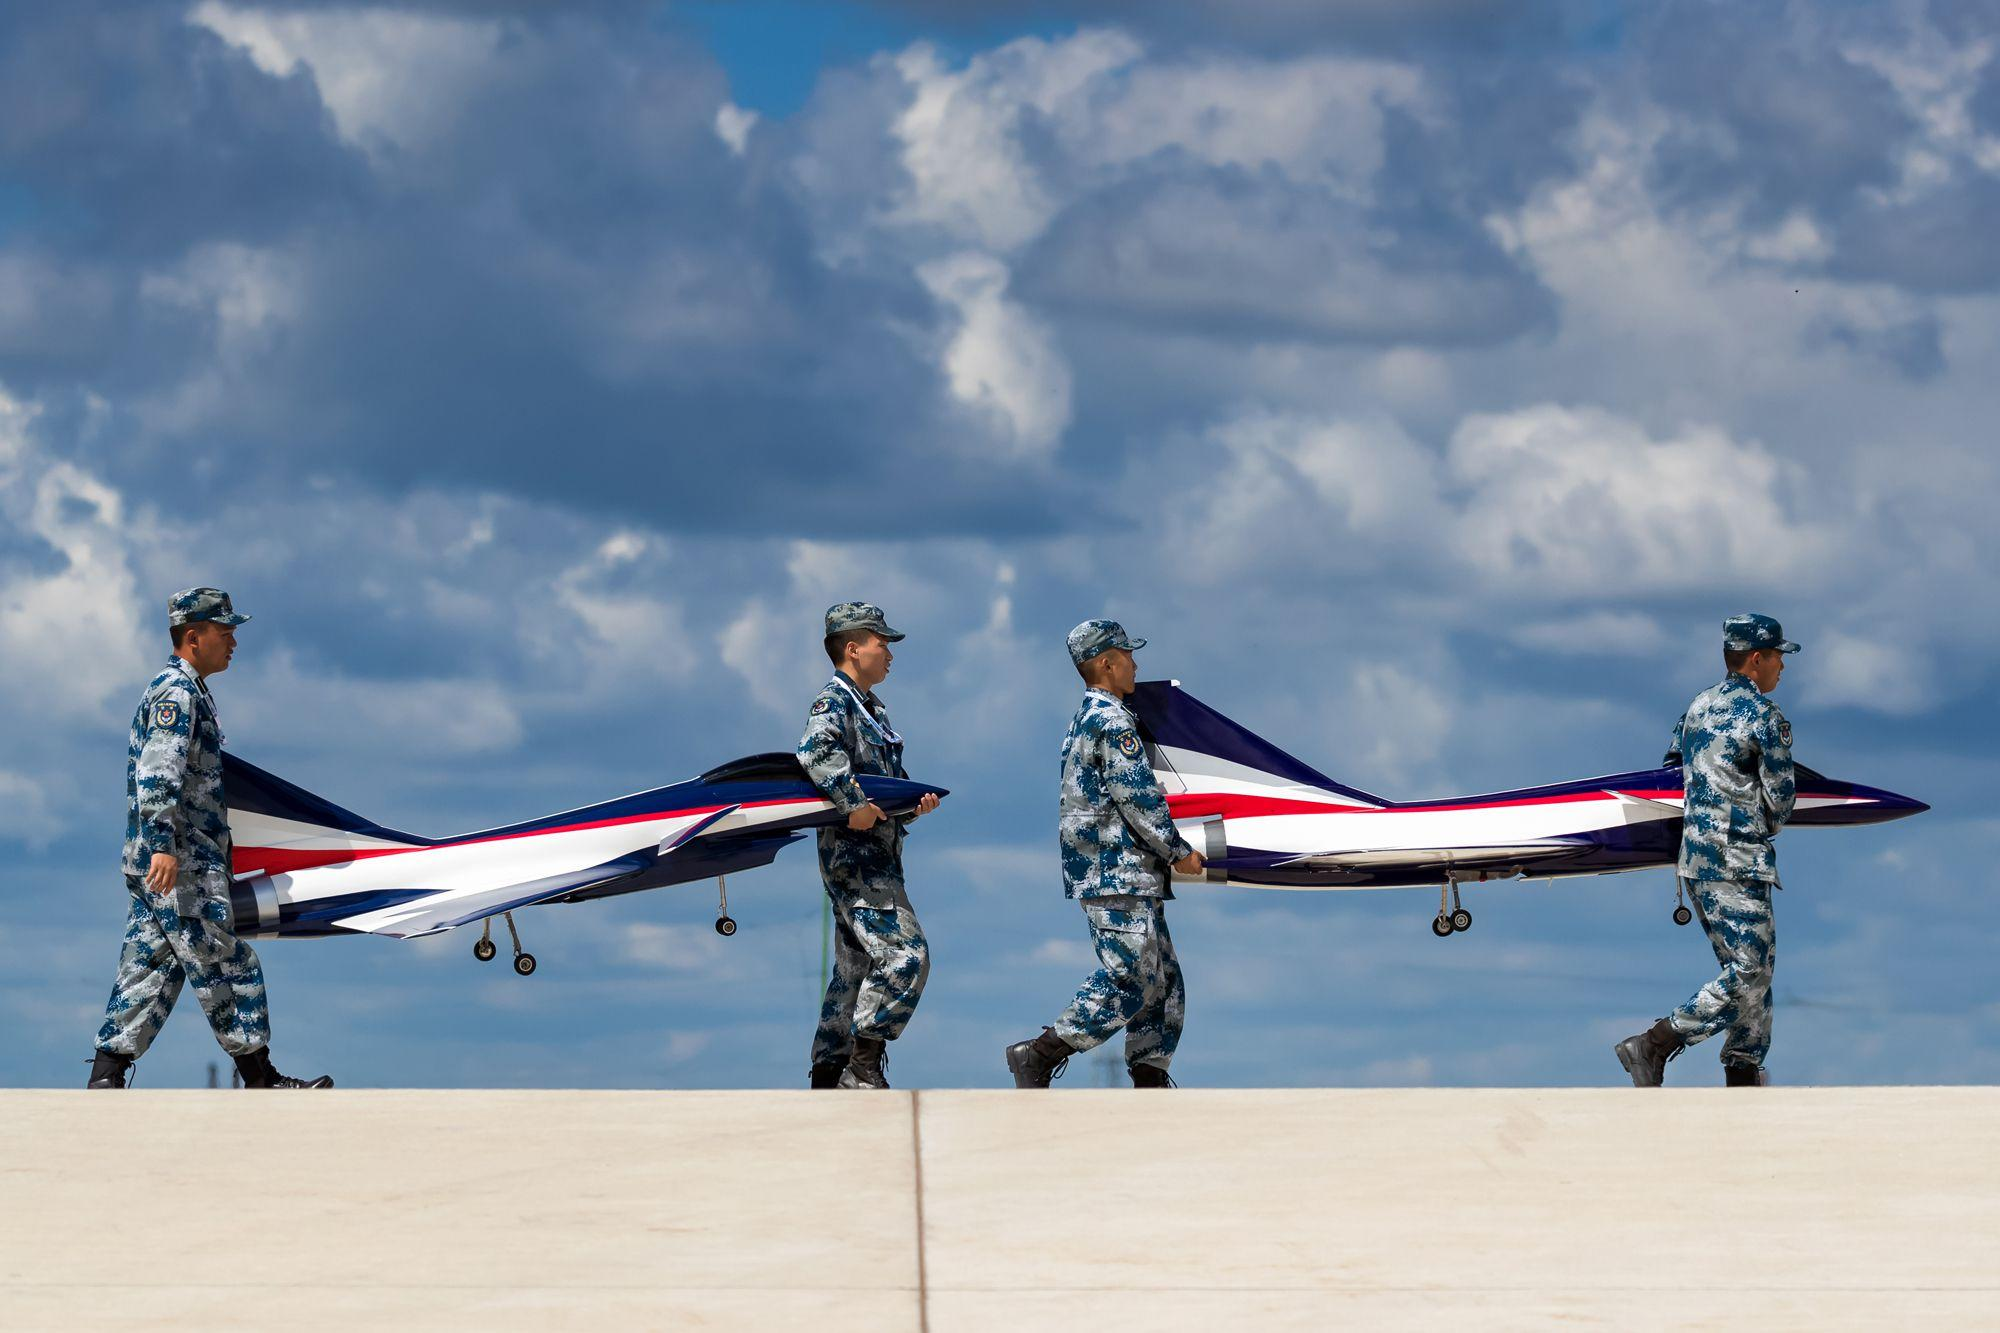 China's Copycat Air Force and the Planes That